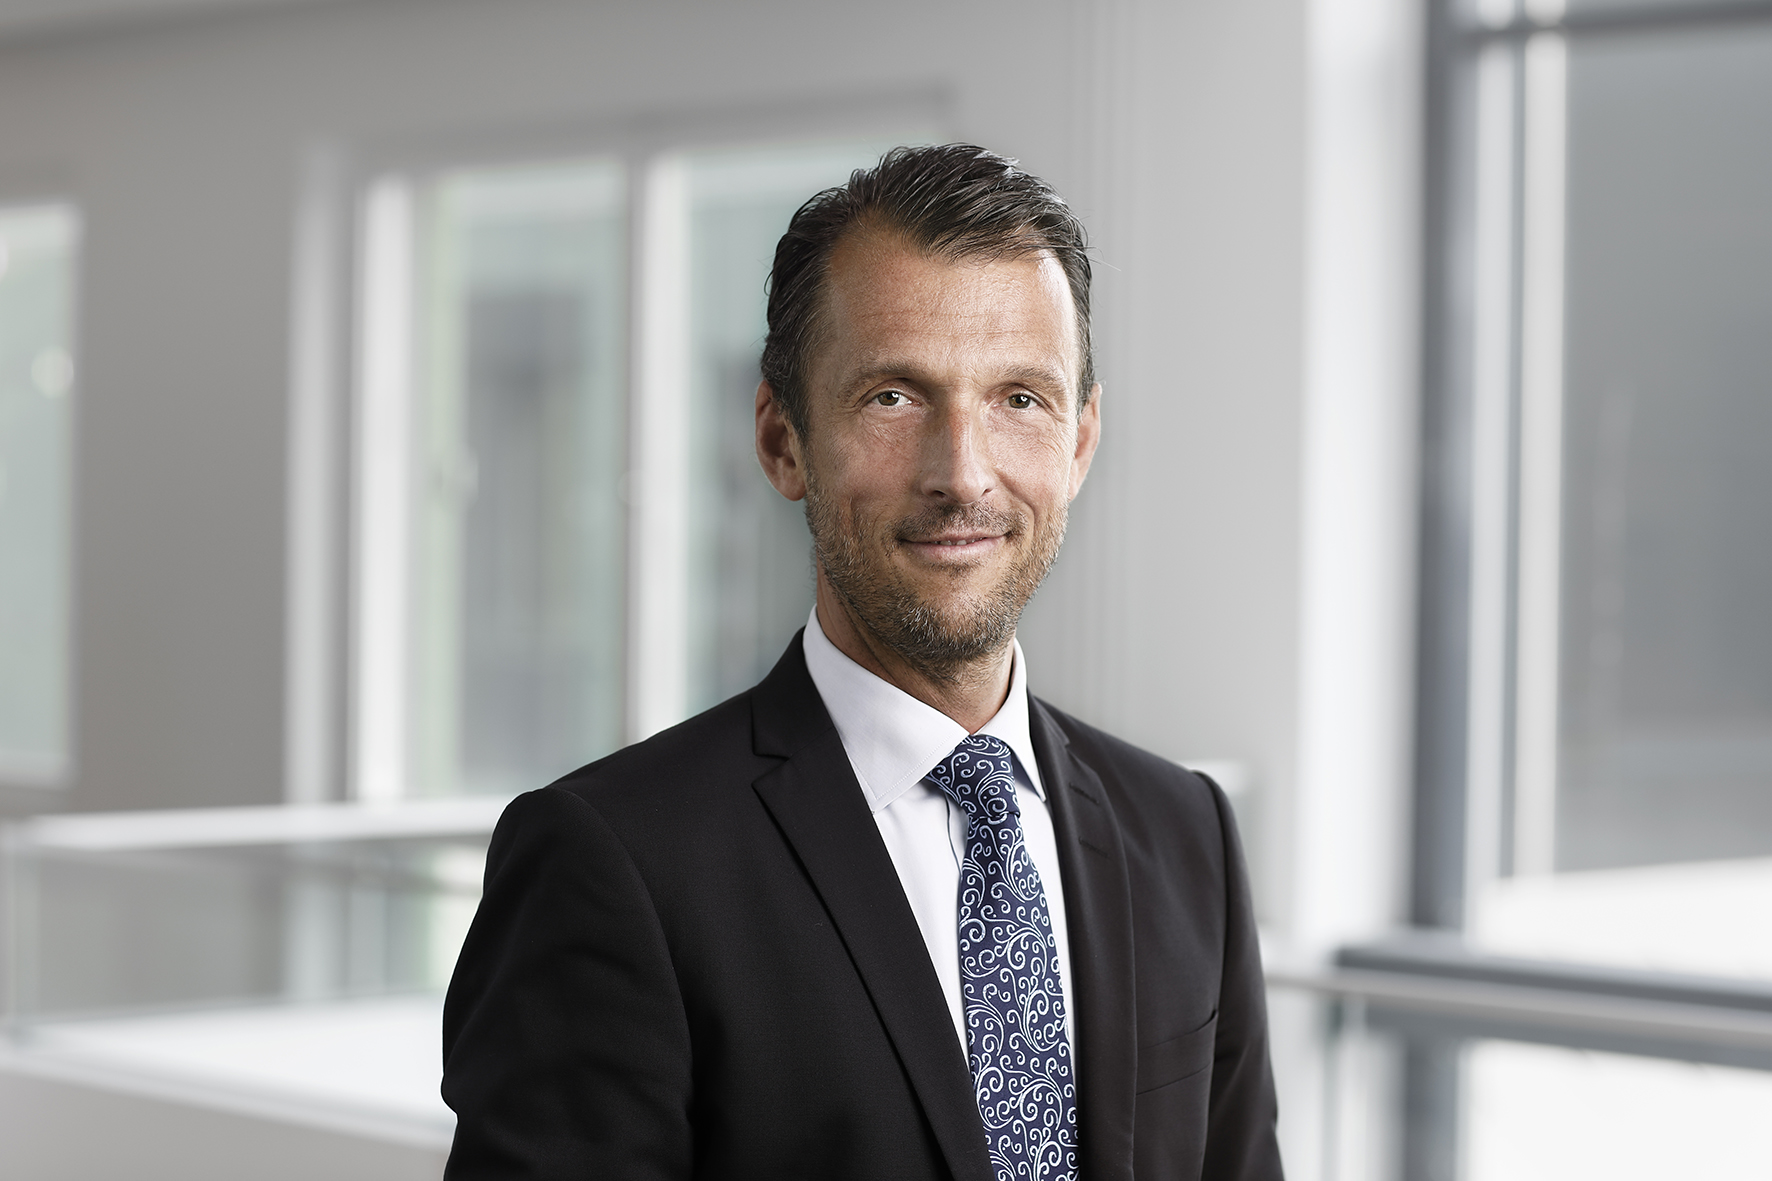 Andreas Regnell, Head of Strategy at Vattenfall.